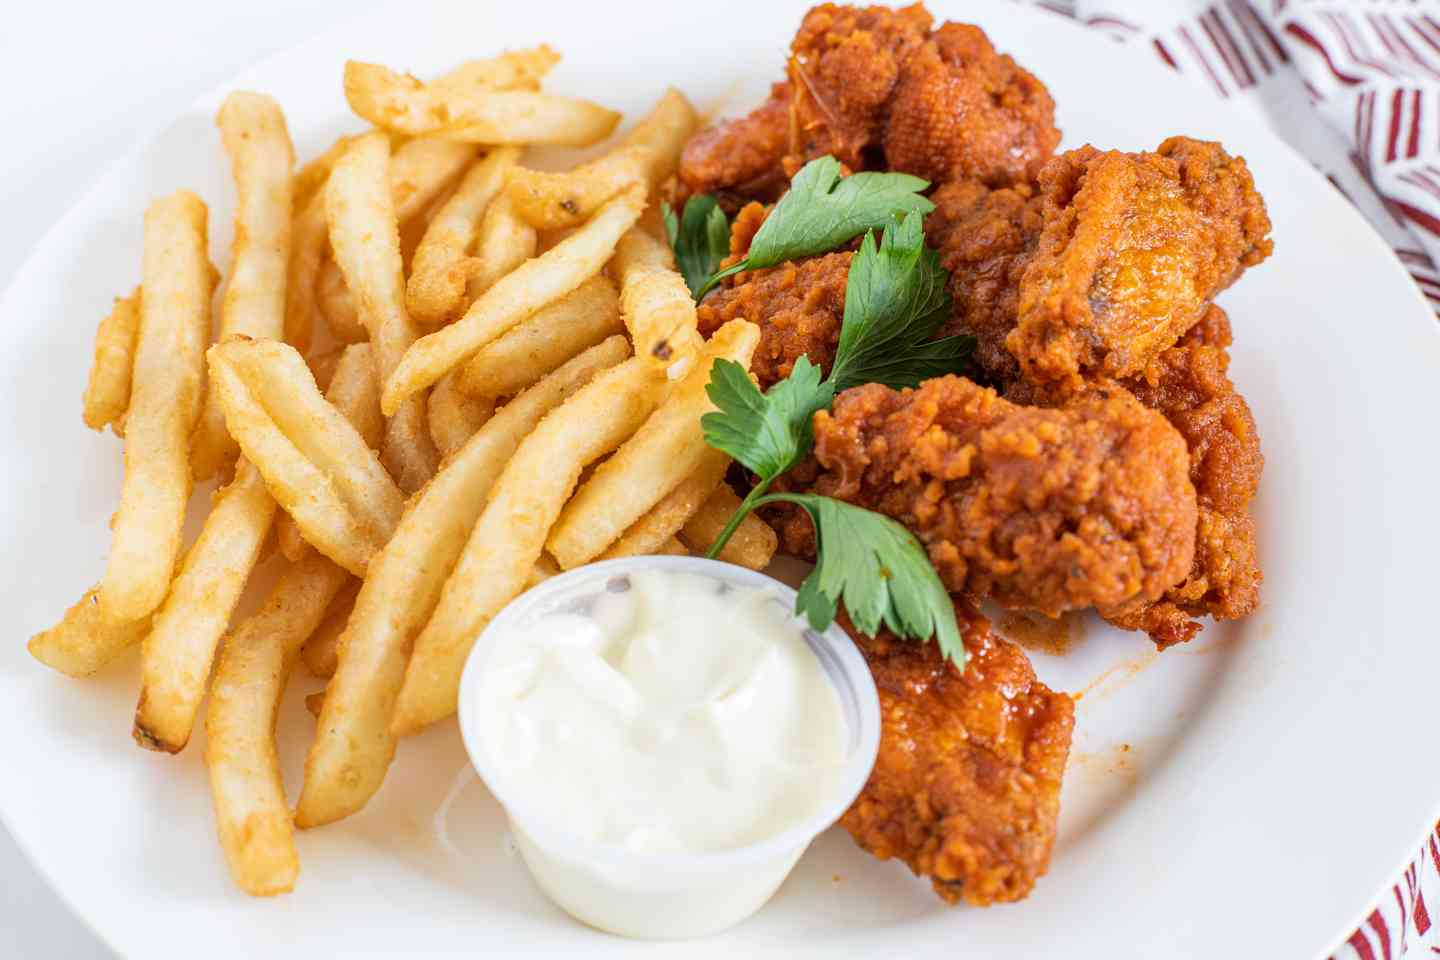 Buffalo Wing Combo (12 Pieces)